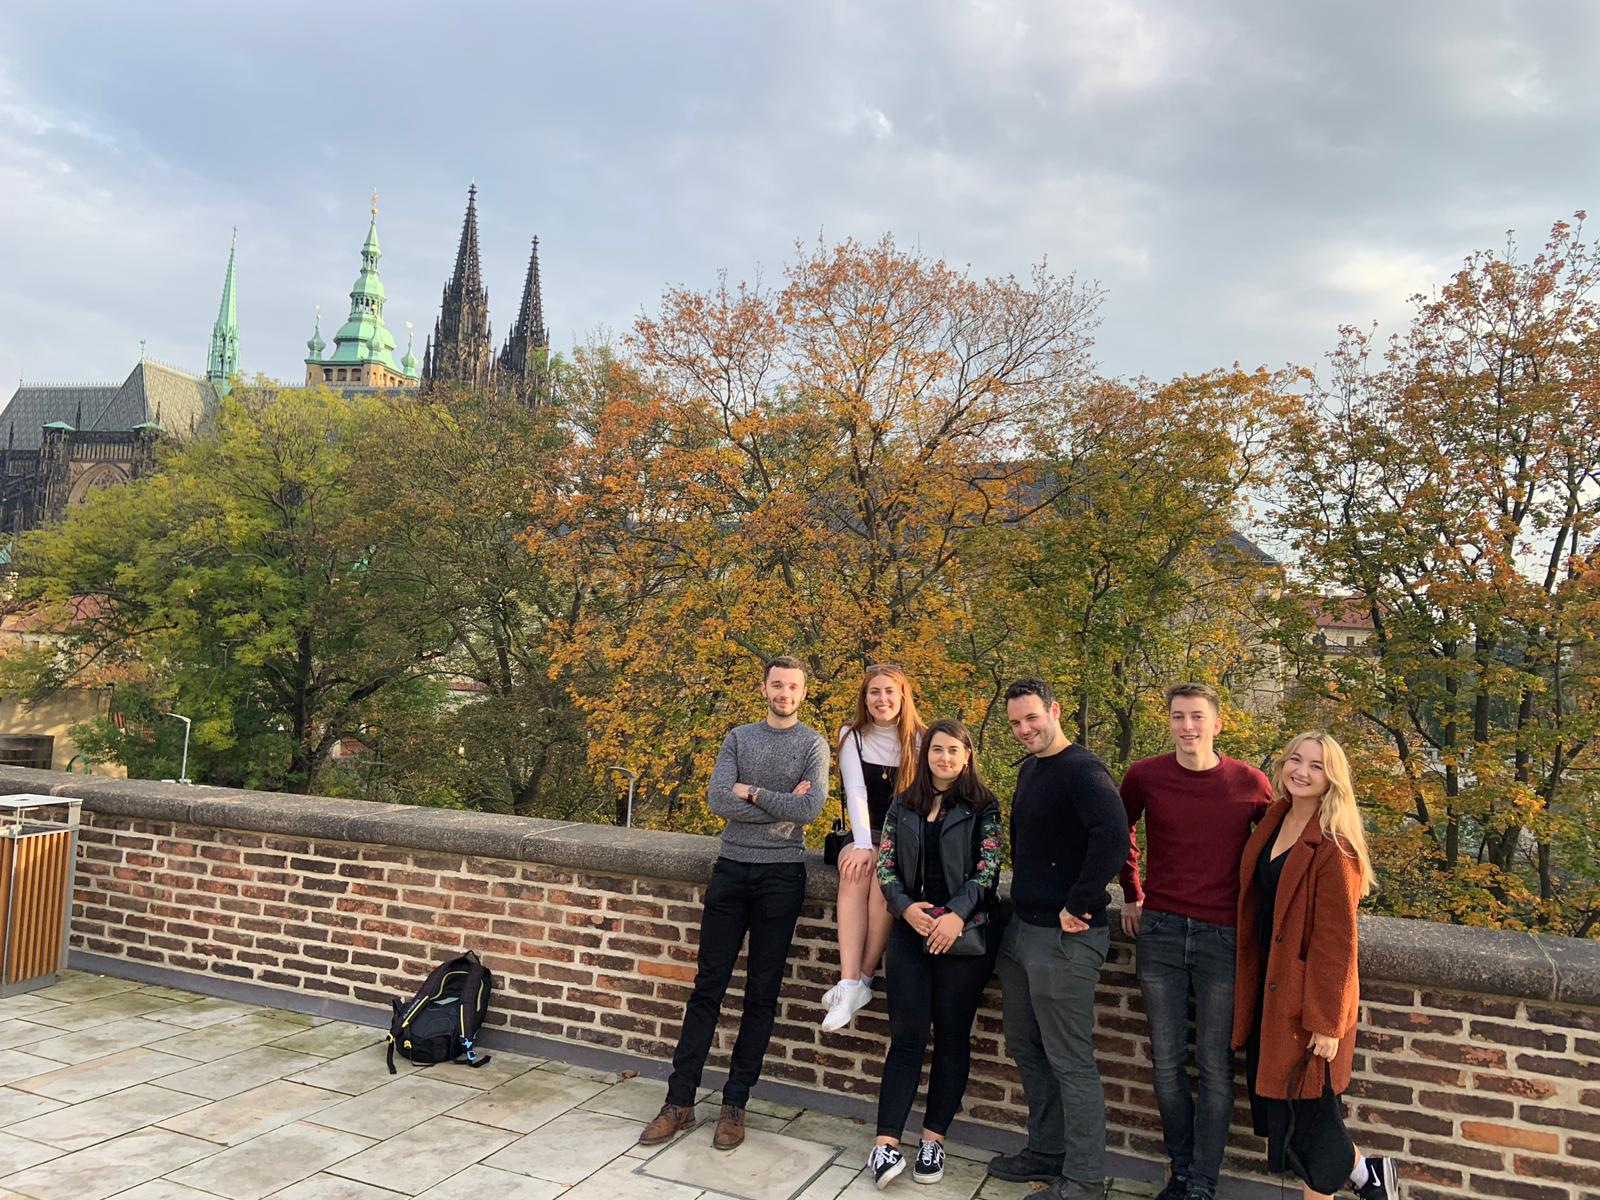 5 students in front of a stone wall with a castle in the background